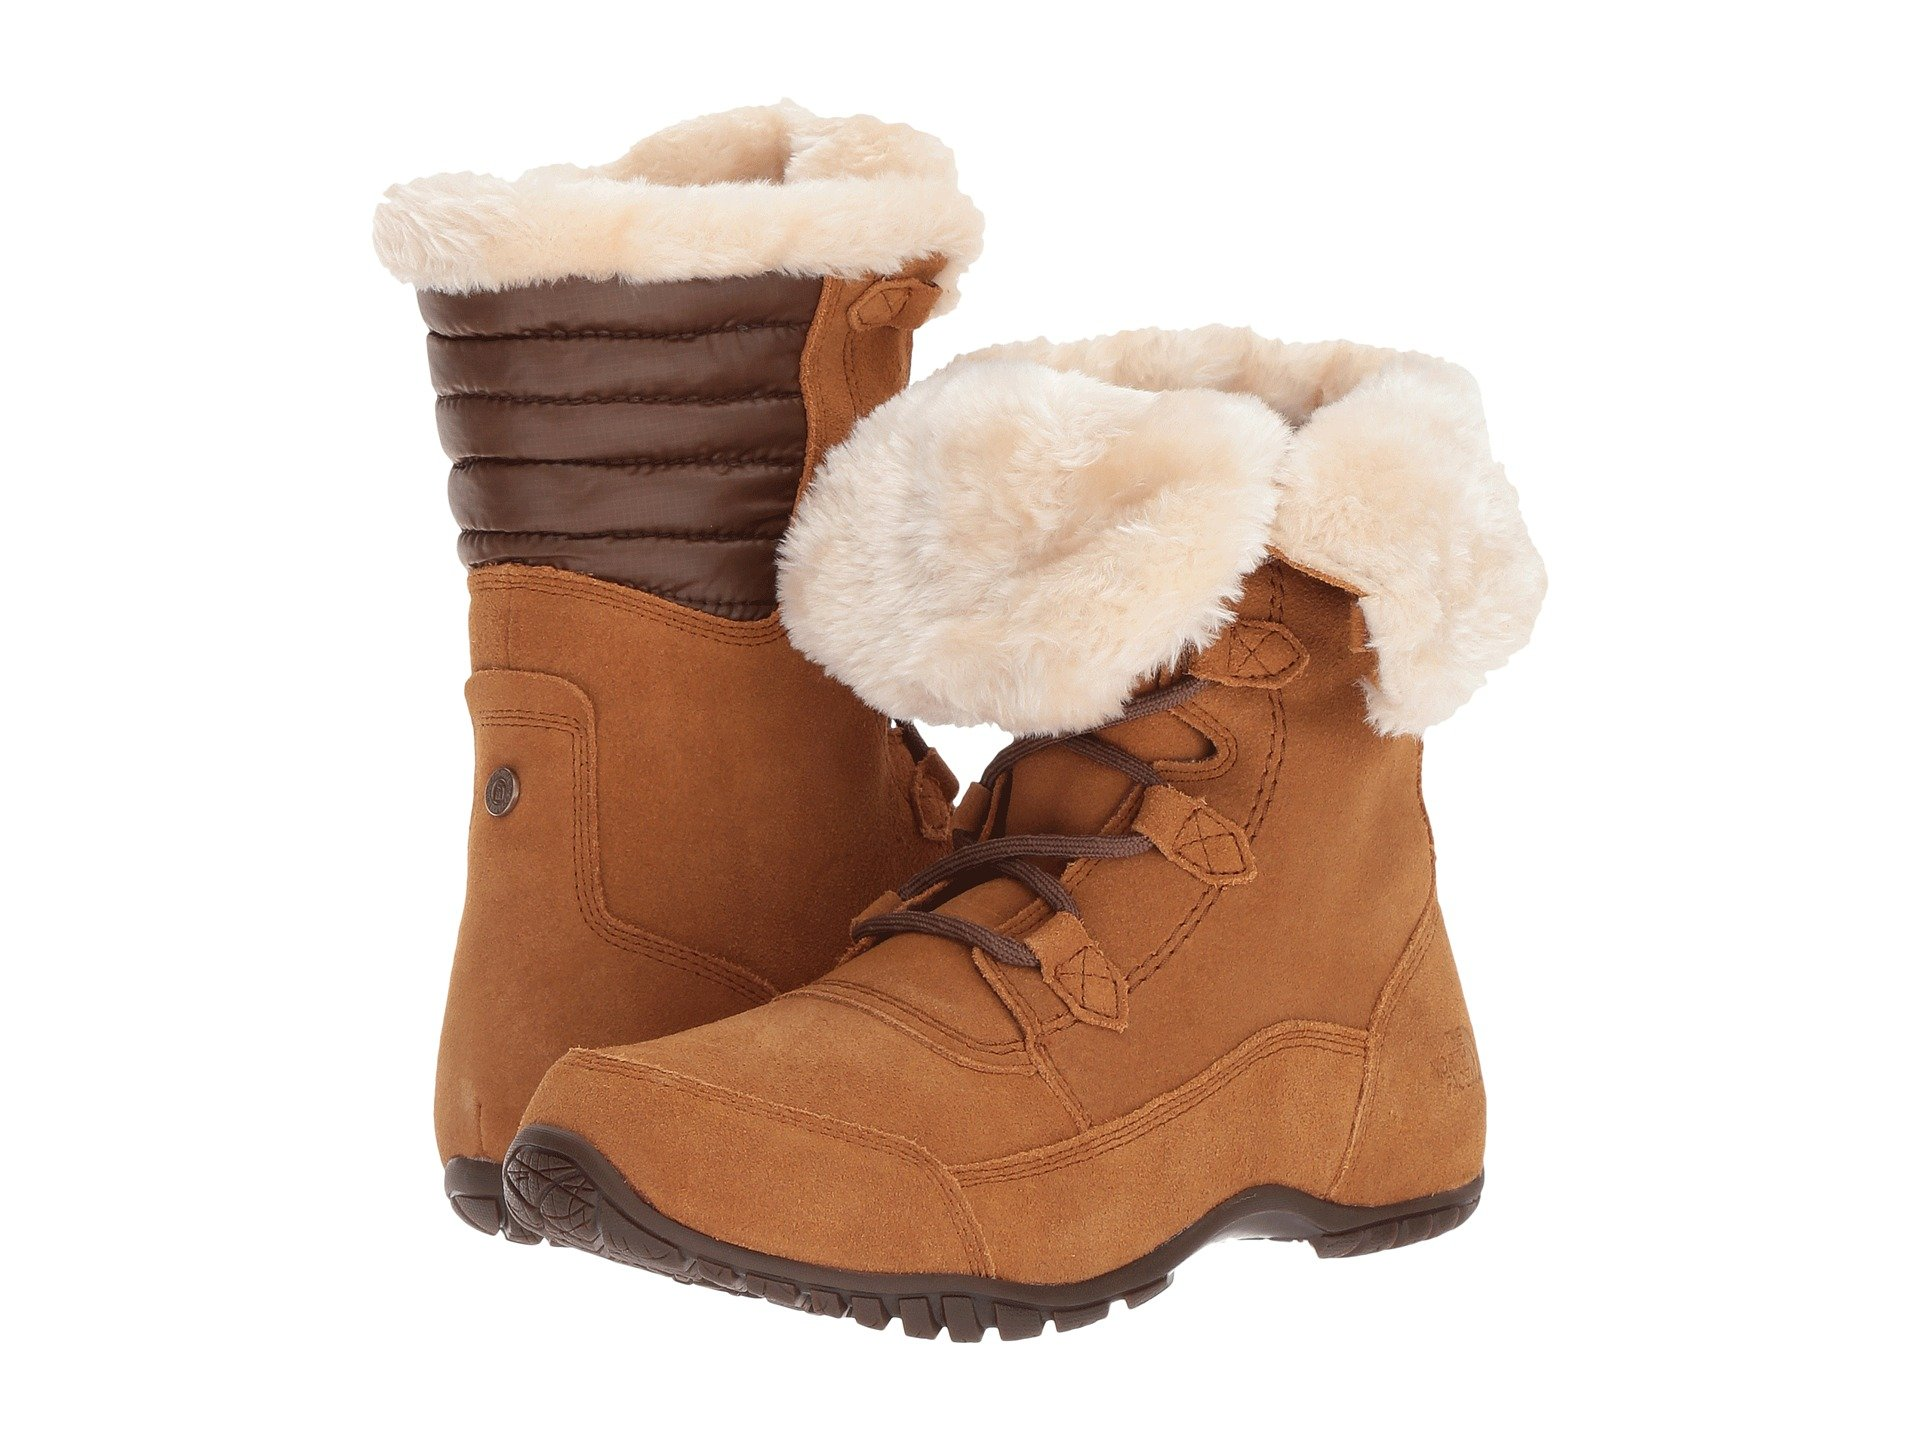 6PM  The North Face Nuptse Purna II Boots – 50% Off + Free Shipping ... 9cde3cdb7